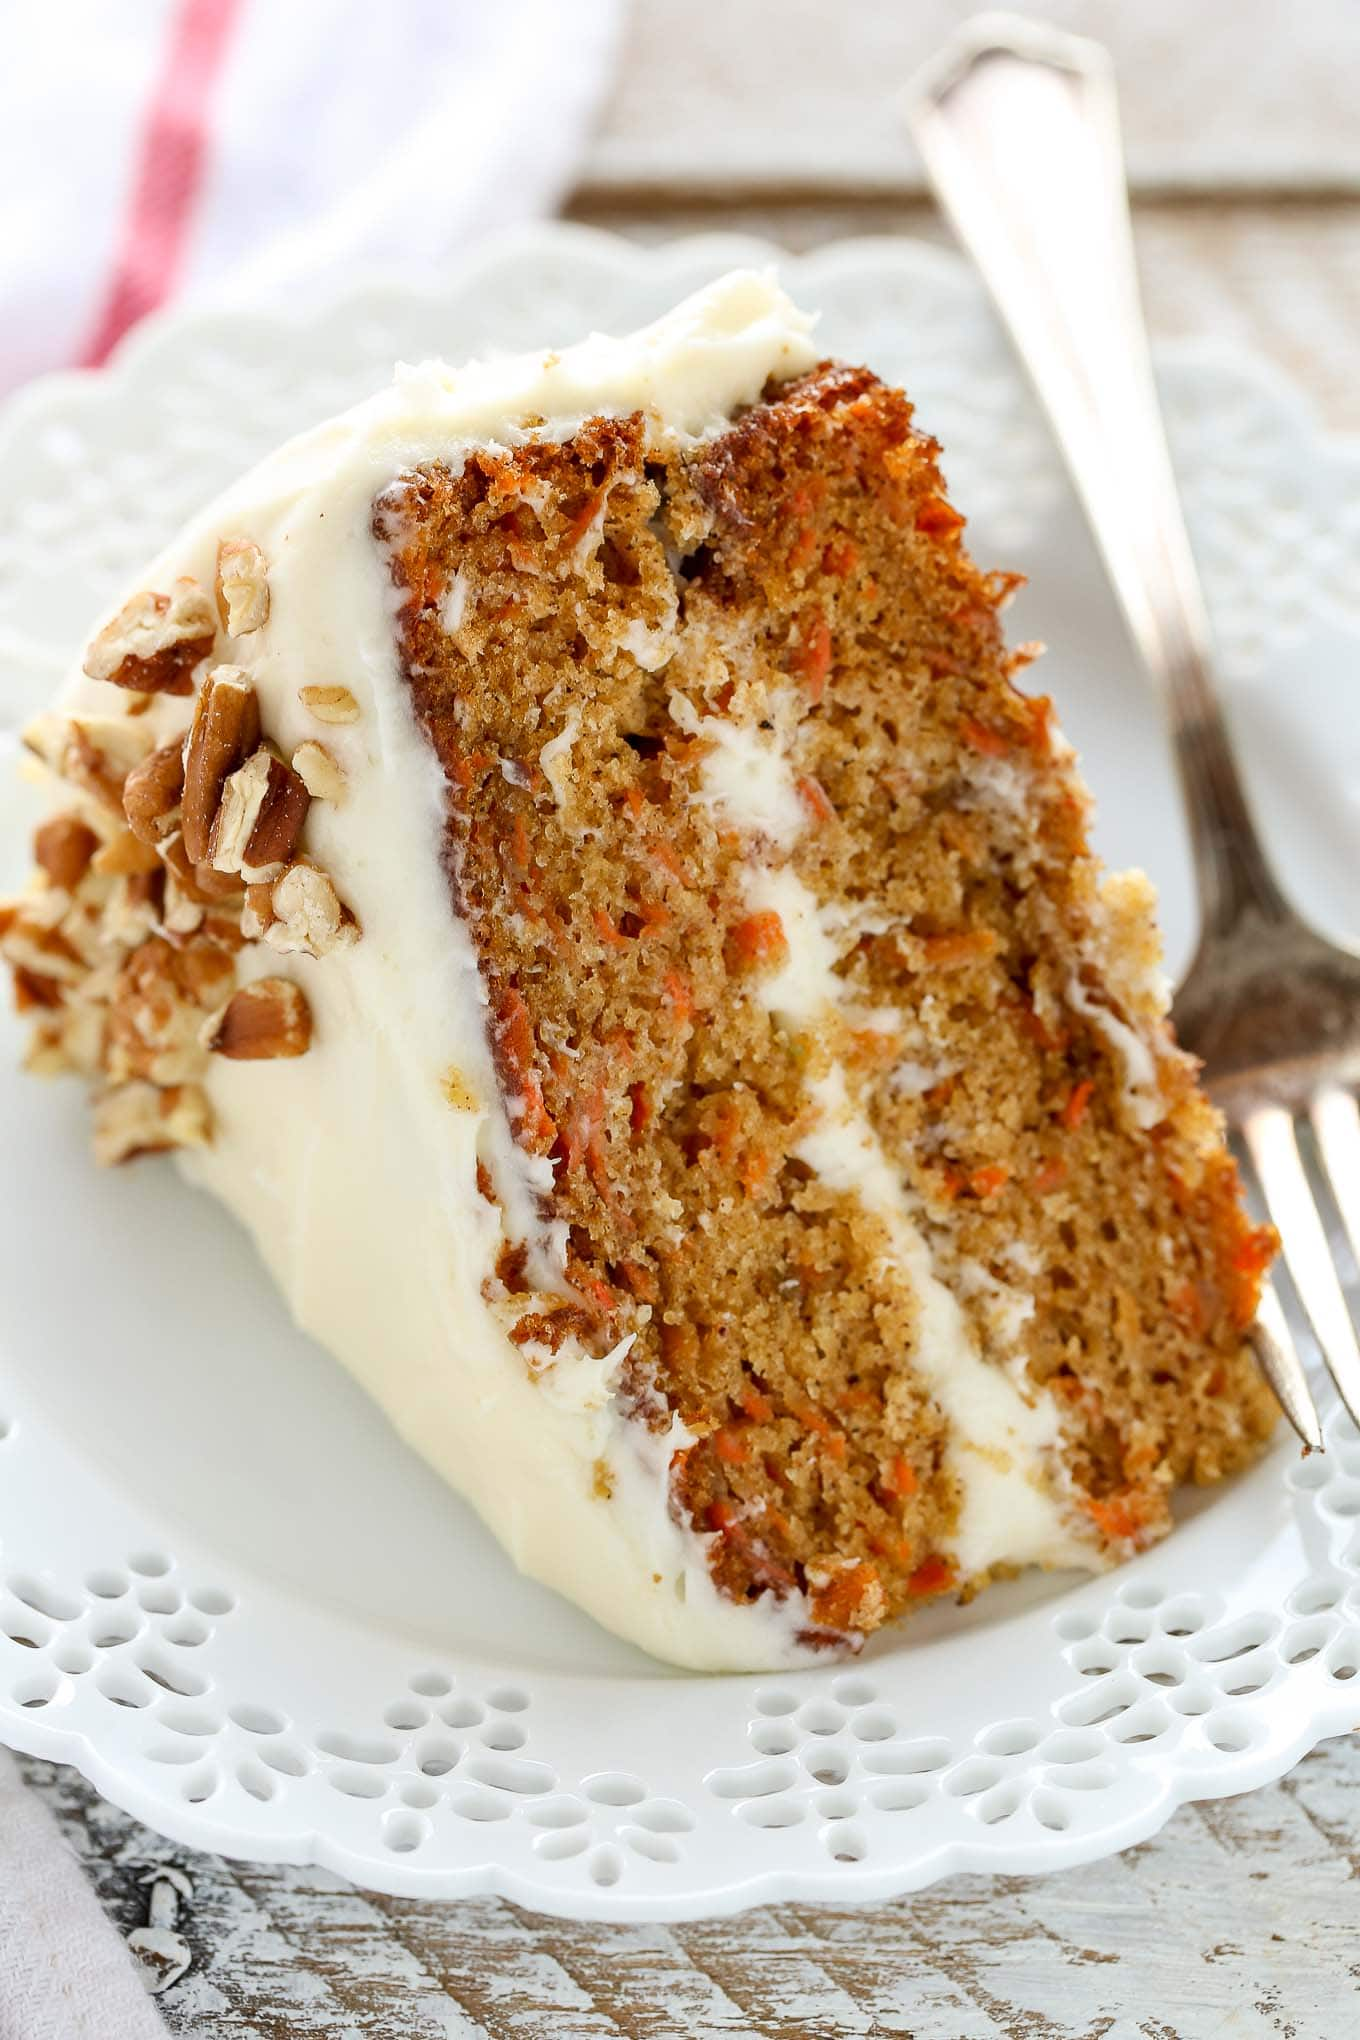 Sugar Free Carrot Cake Using Cake Mix